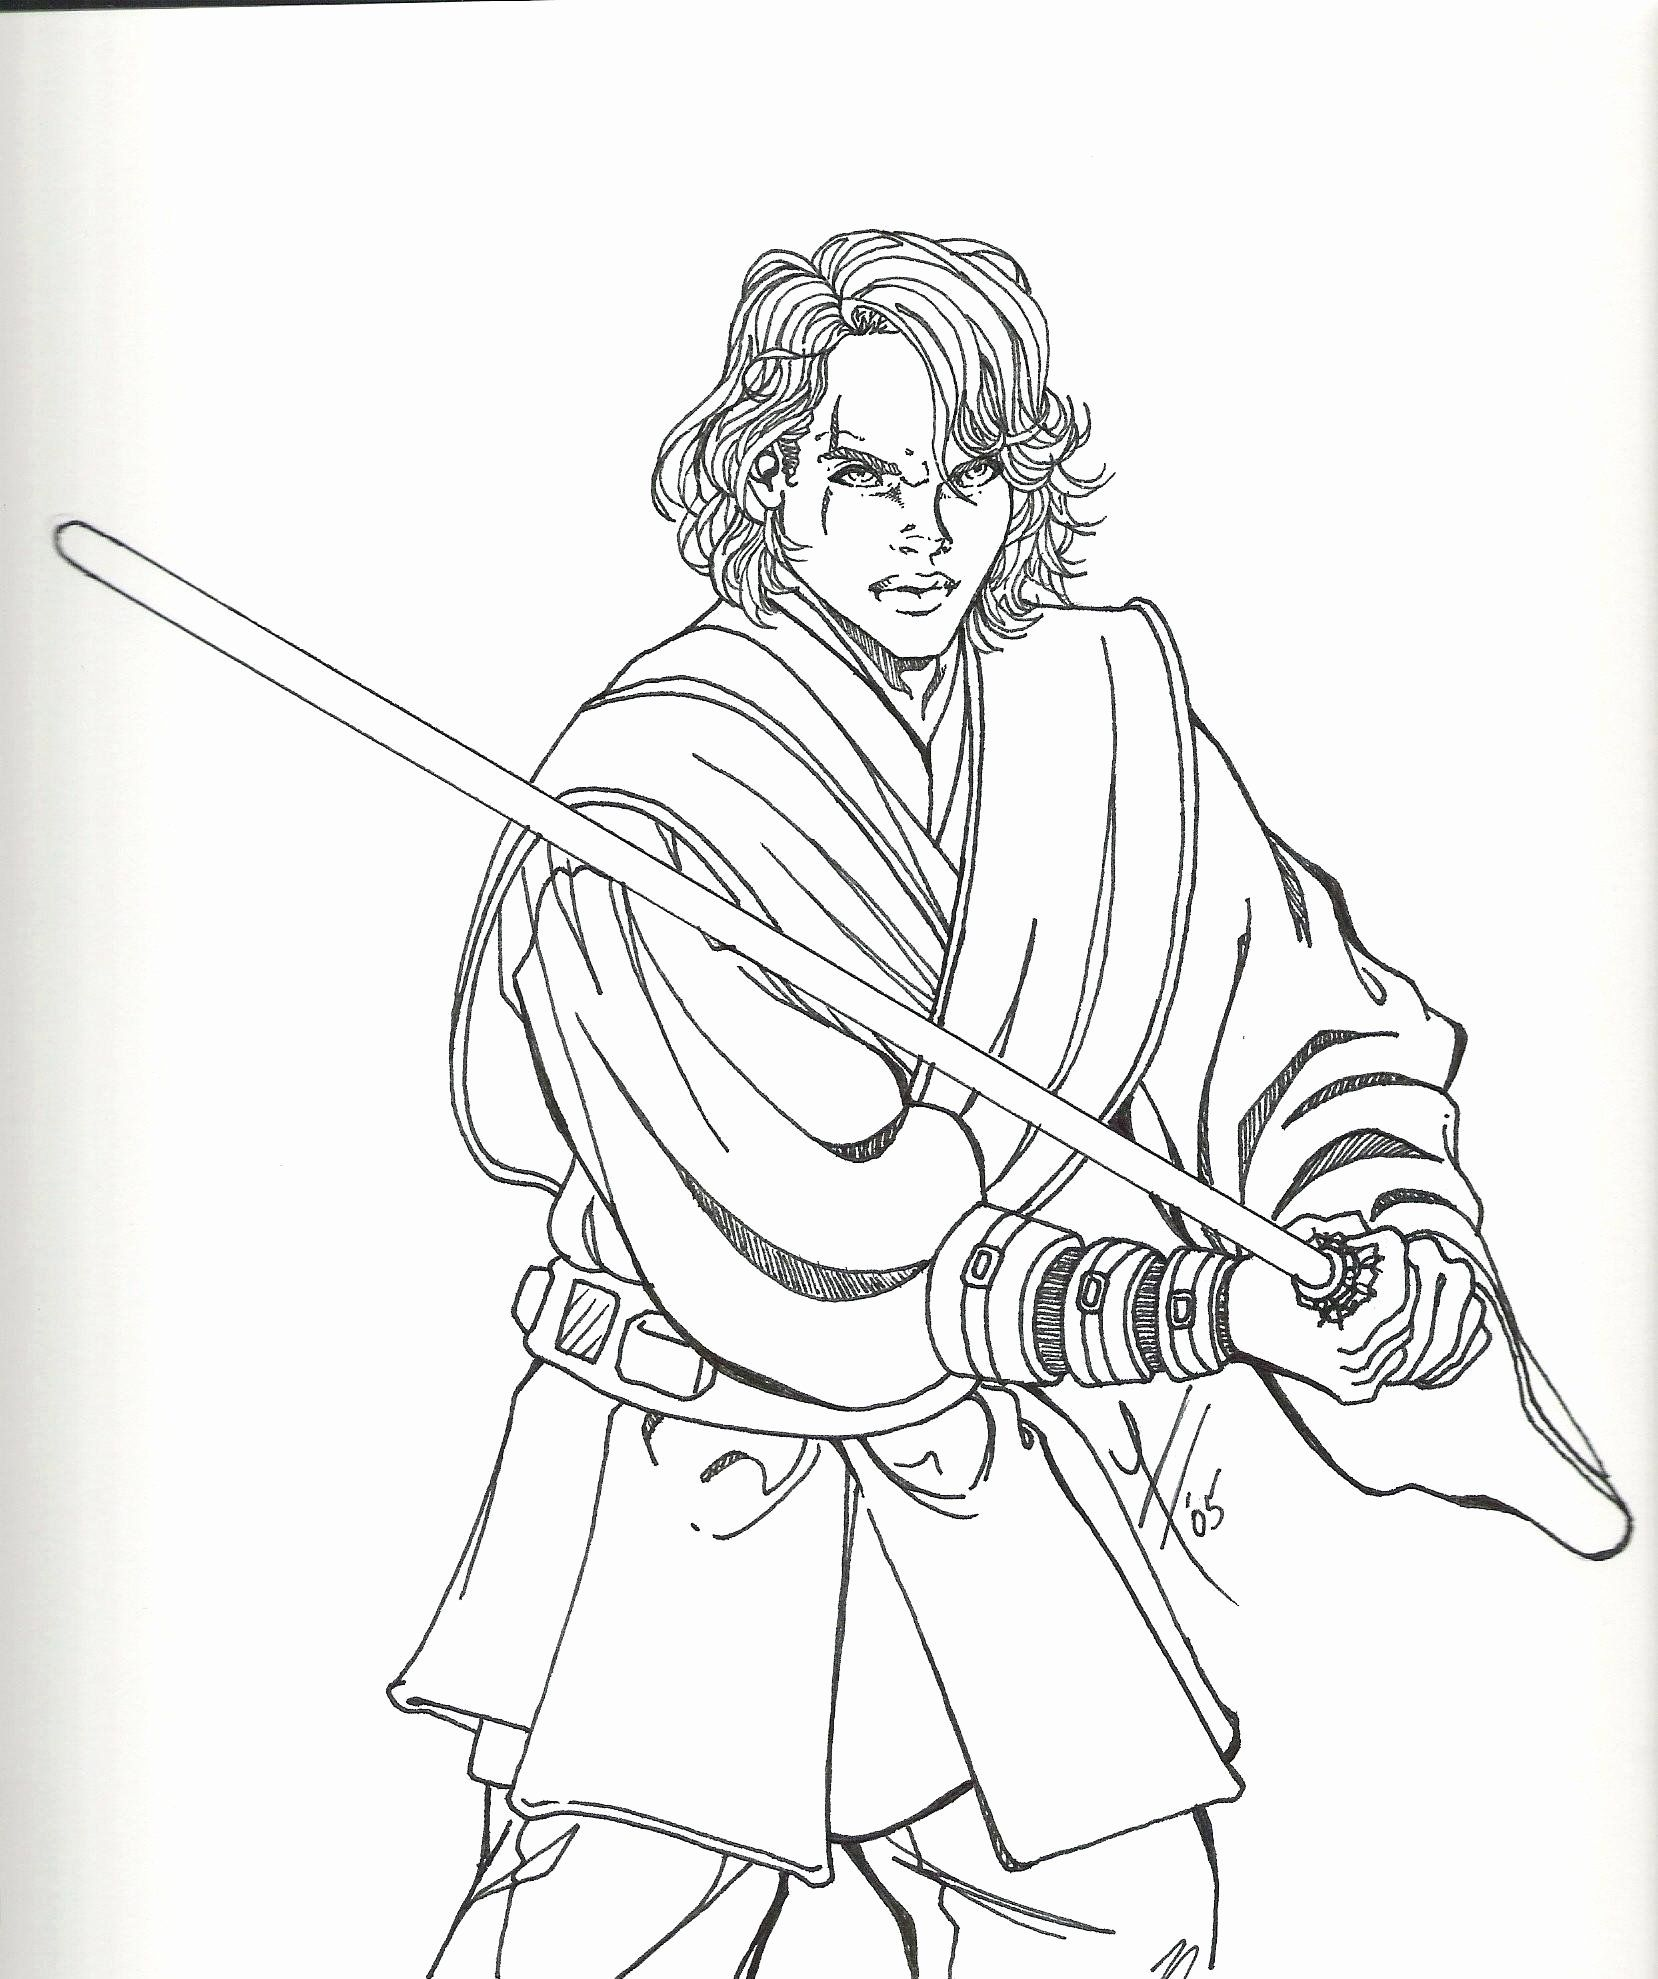 Star Wars Coloring Printables Lovely Angry Birds Star Wars 2 Coloring Pages Anakin Star Wars Coloring Book Star Wars Colors Bird Coloring Pages